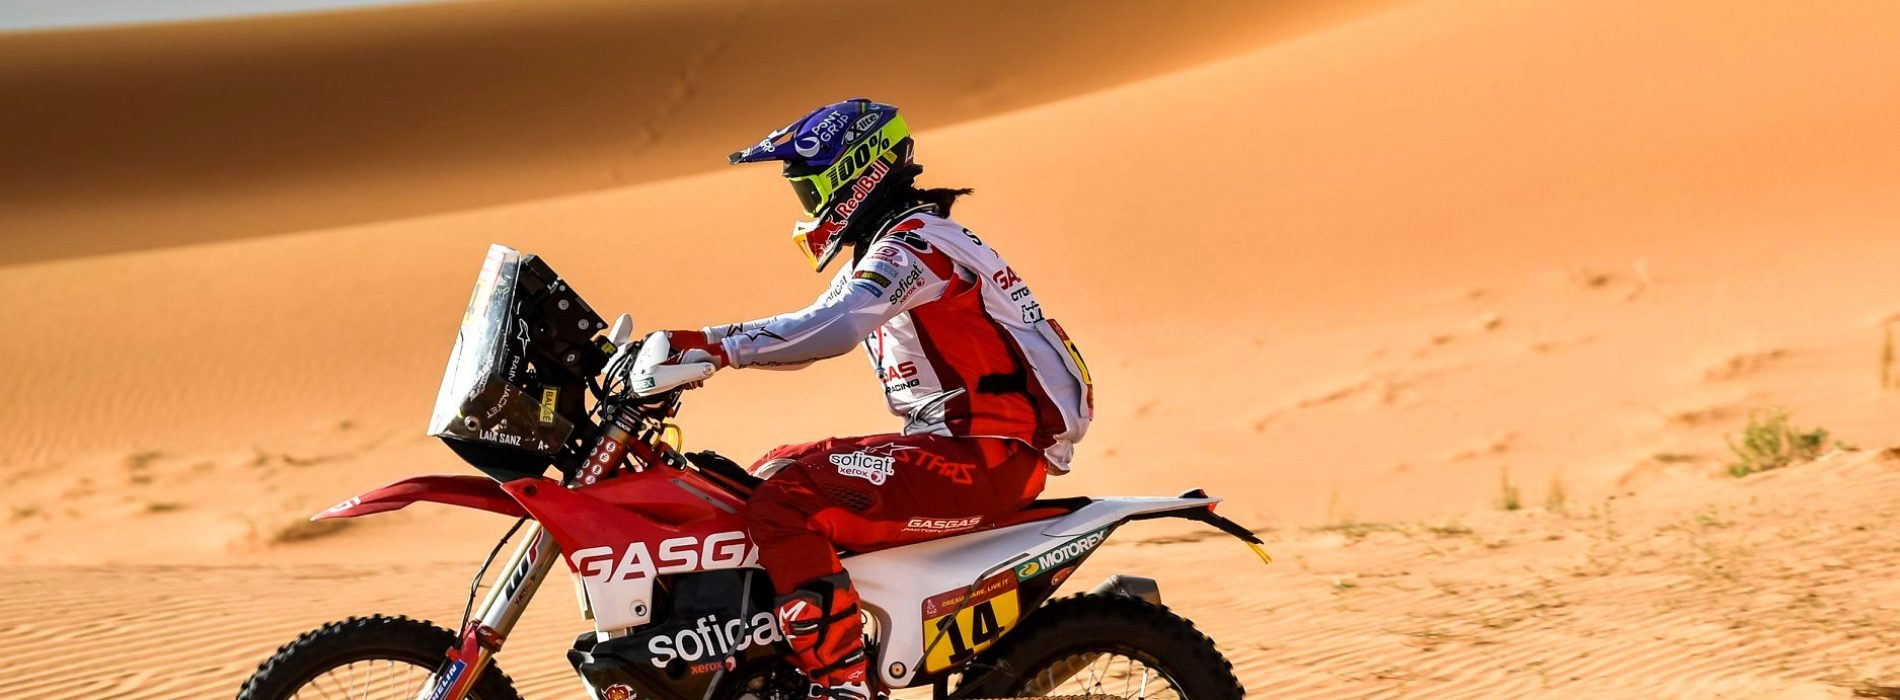 Dakar Rally Stage 6 completed- half-way point- Rest Day tomorrow- Women great results